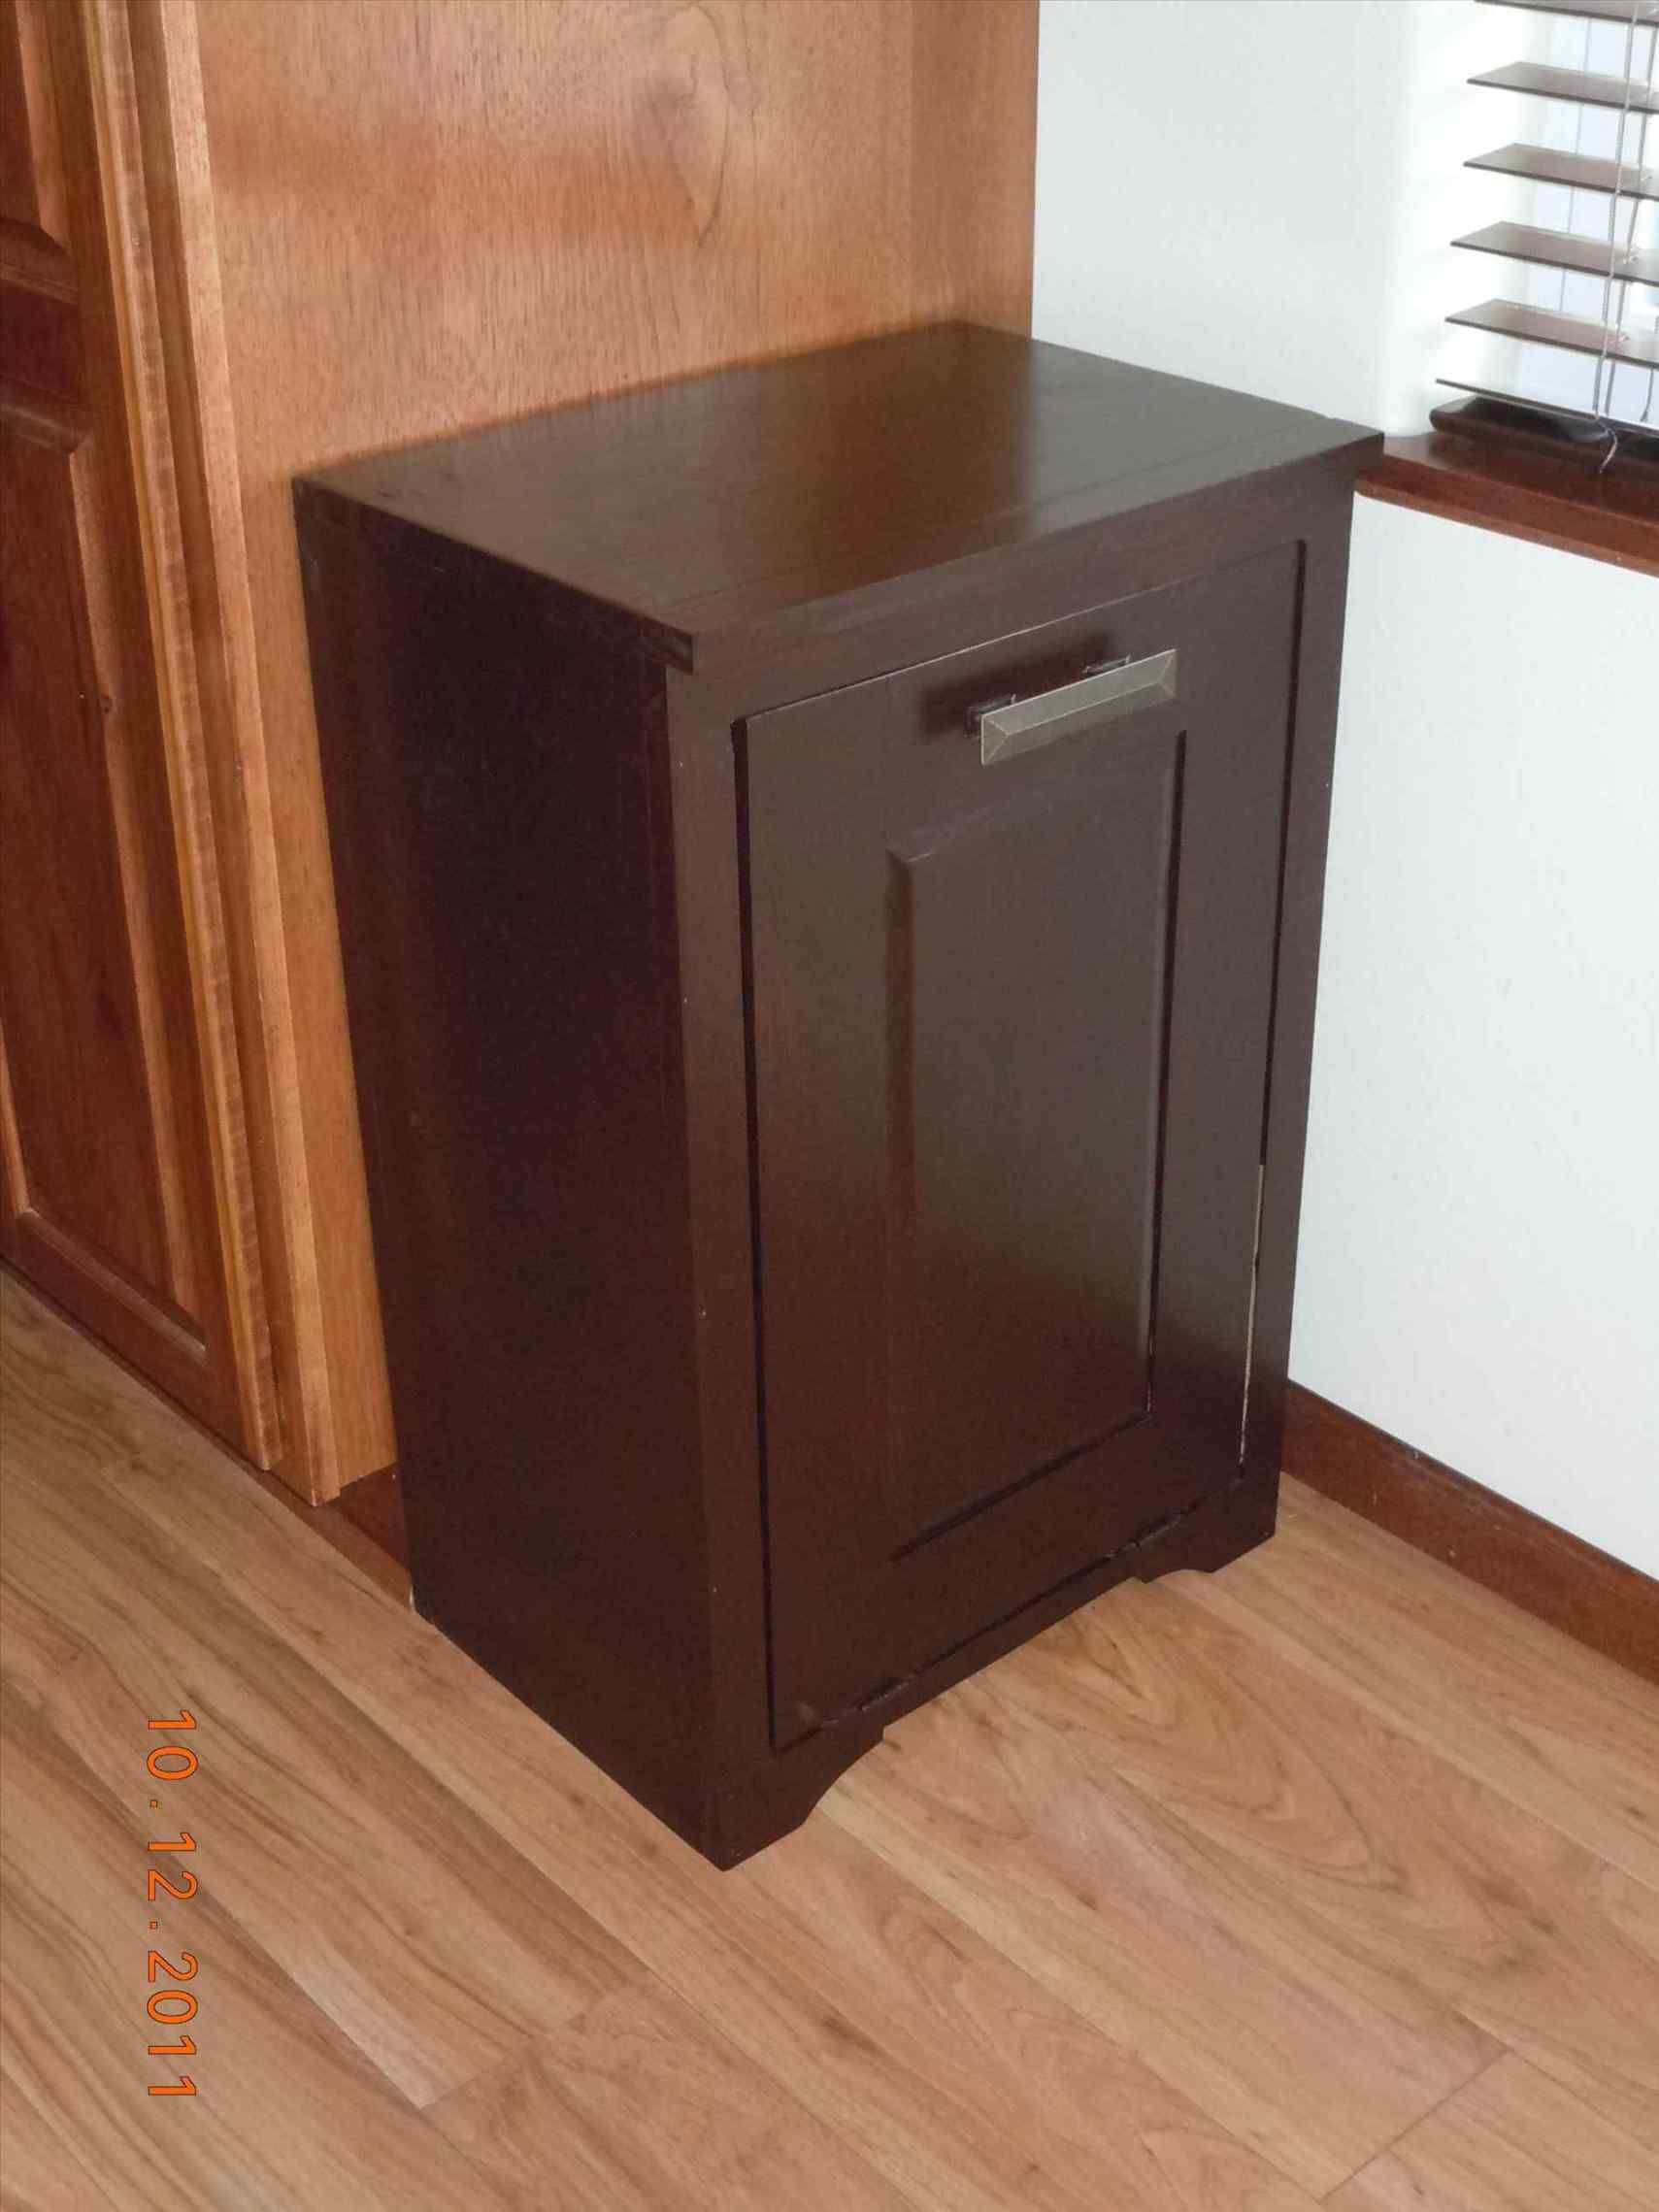 Decorative Trash Cans For Kitchen Trash Can Cabinet Garbage Can Kitchen Trash Cans